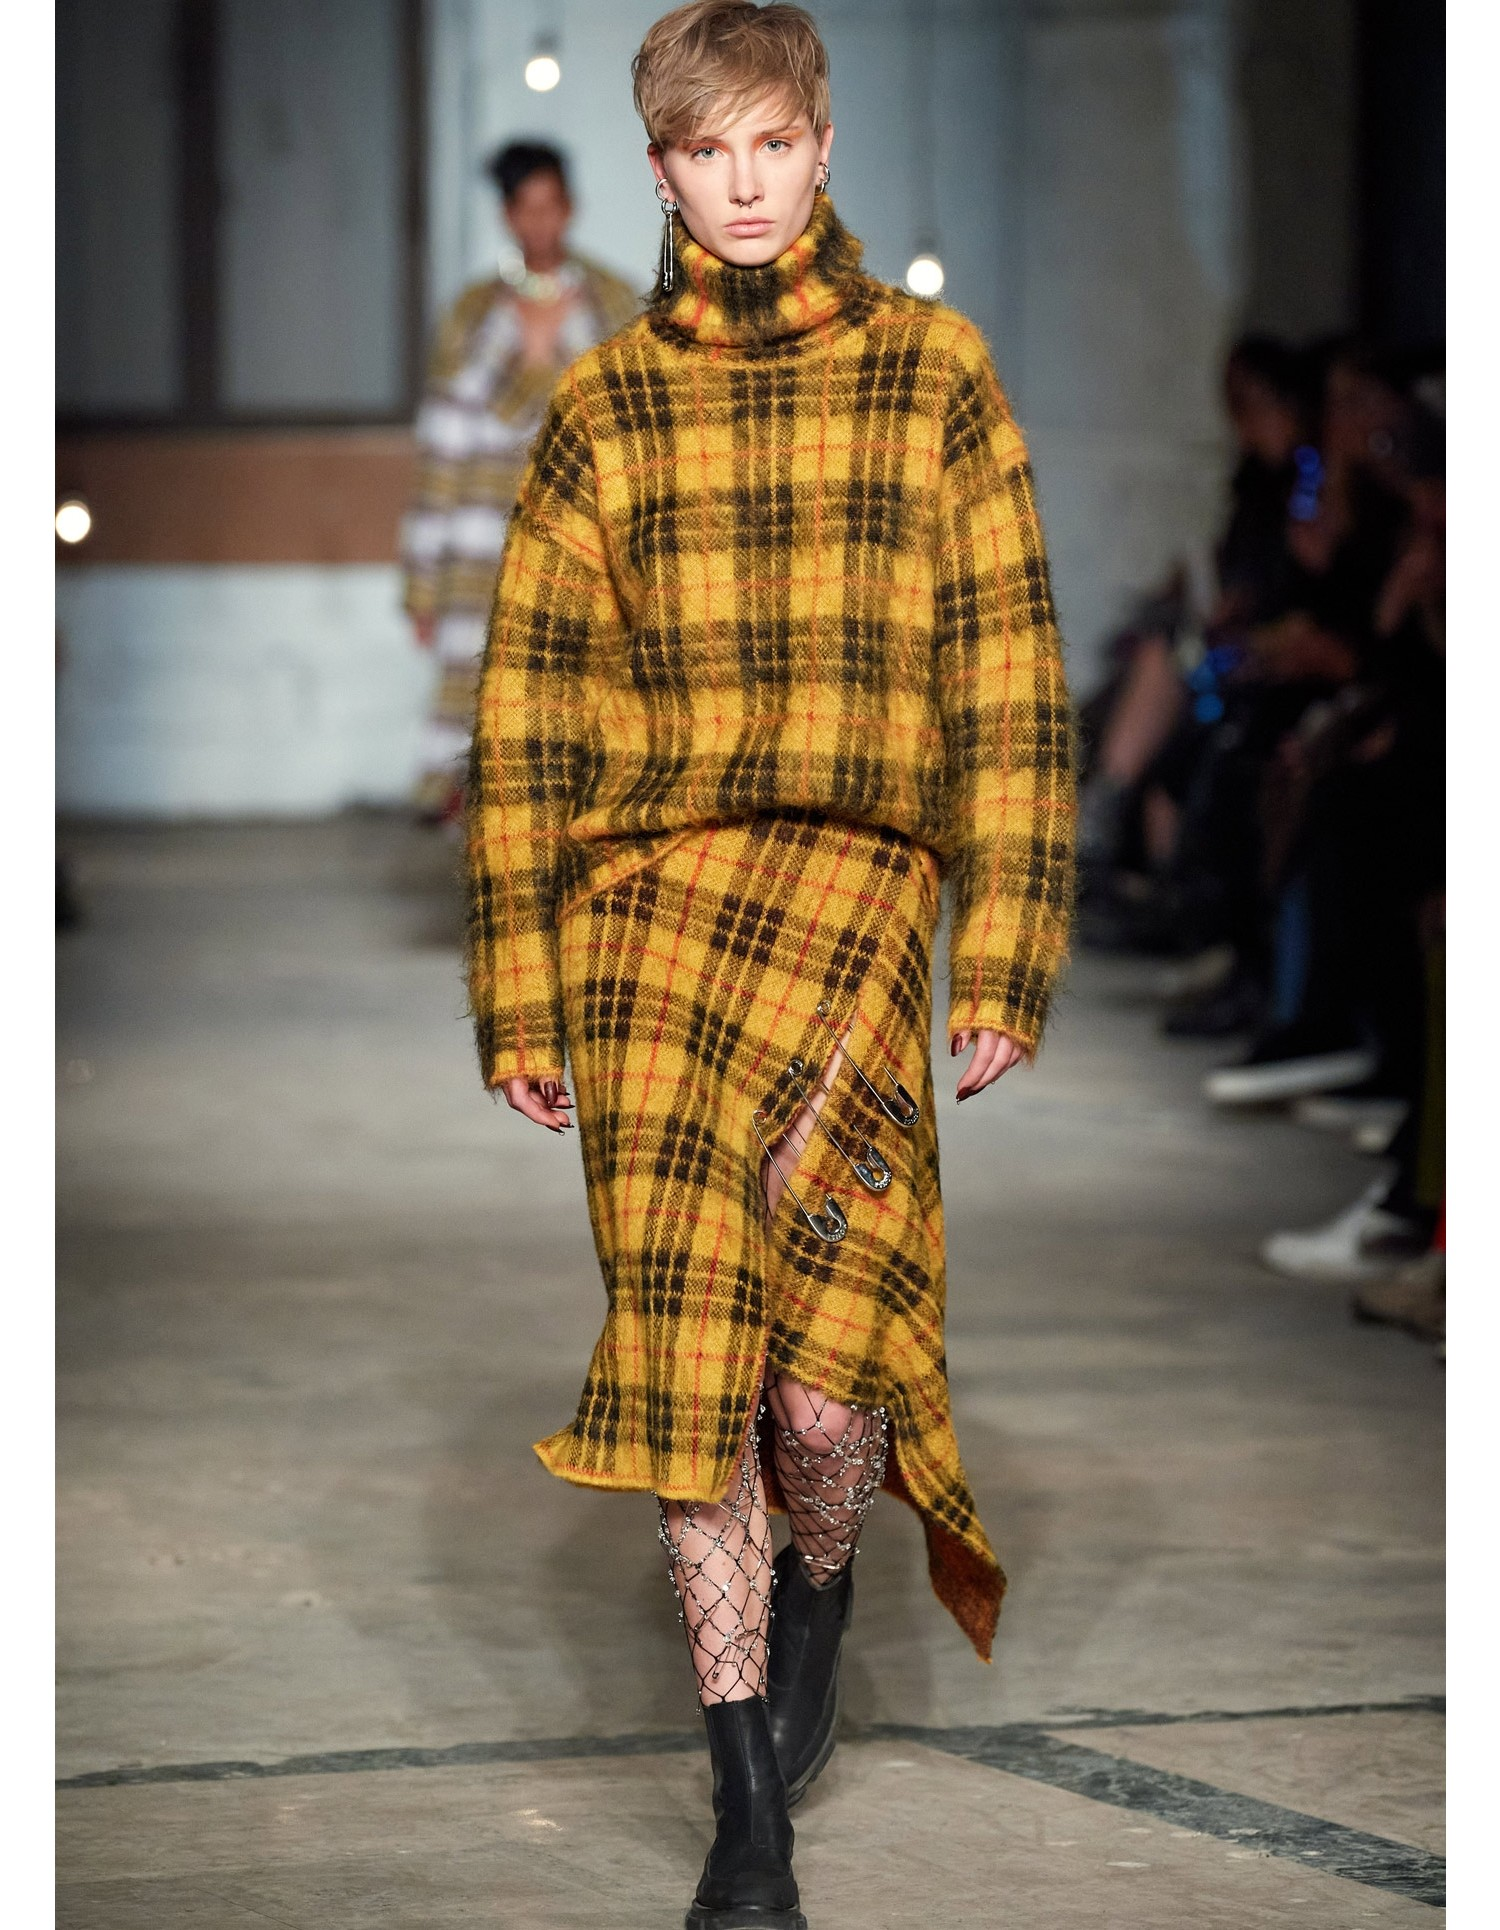 MONSE Tartan Mohair Skirt in Mustard Multi on Model Runway Look